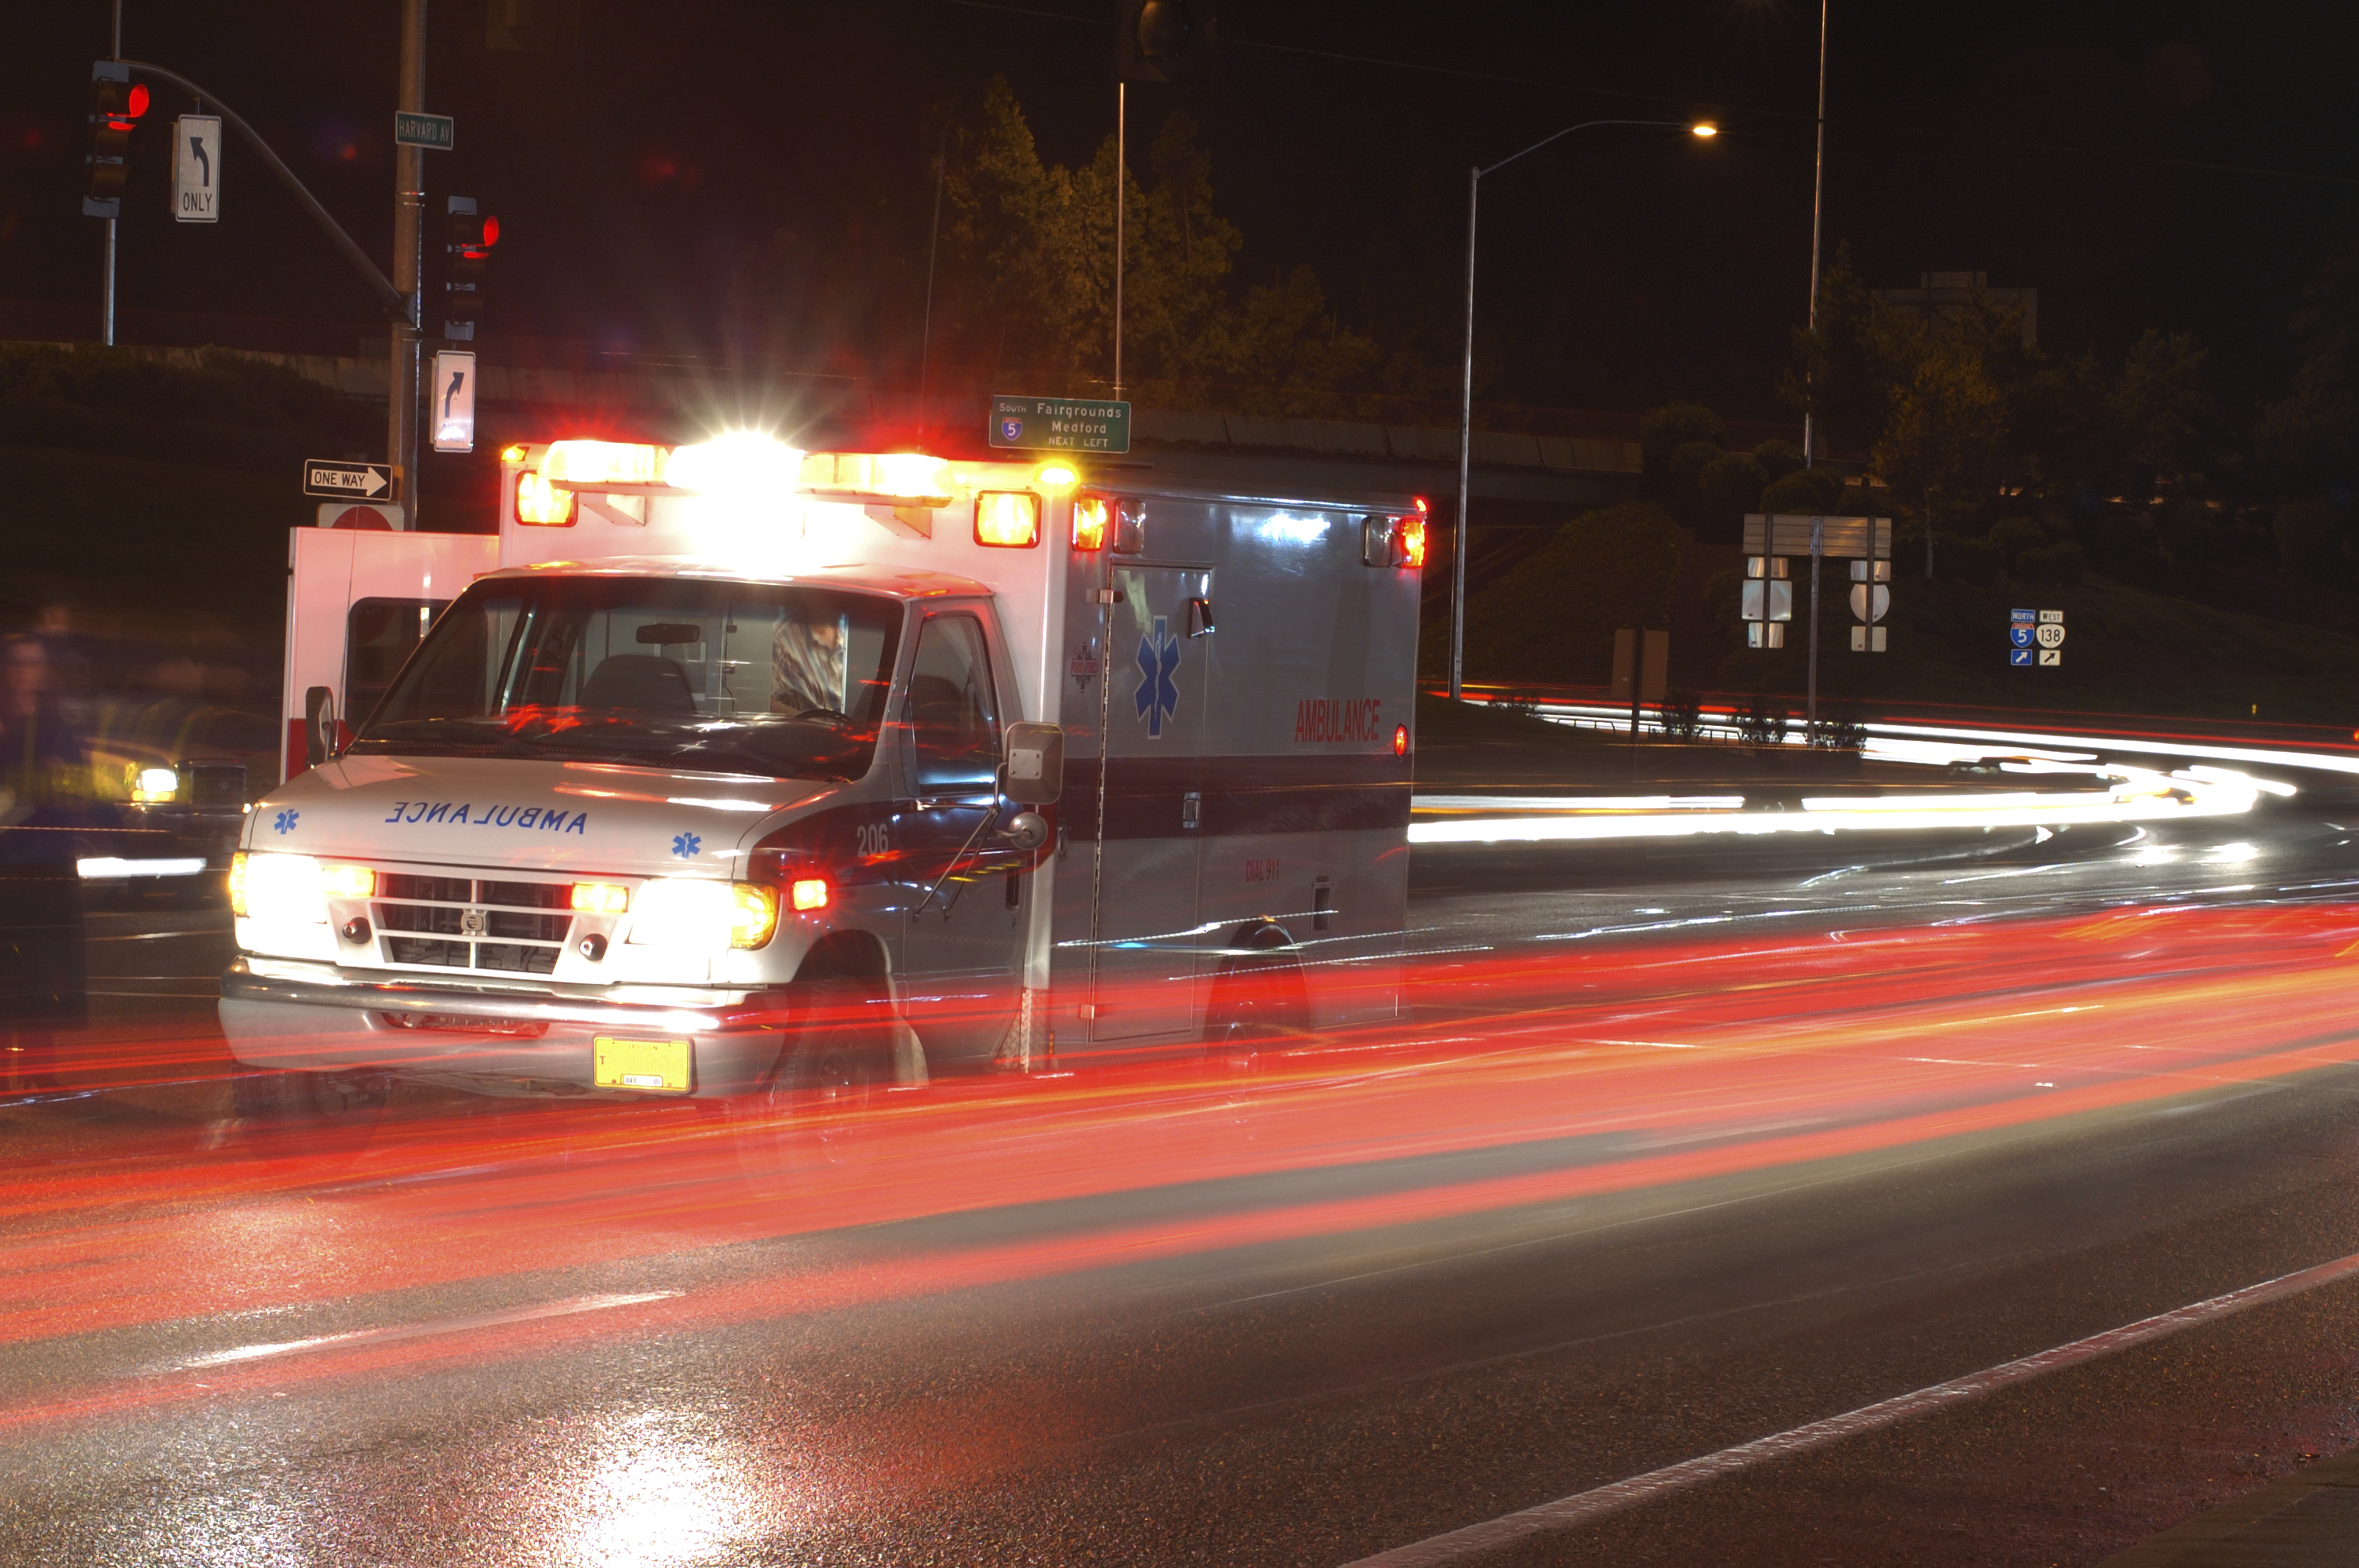 5 Things This Massachusetts Ambulance Company Does to Prevent Fraud